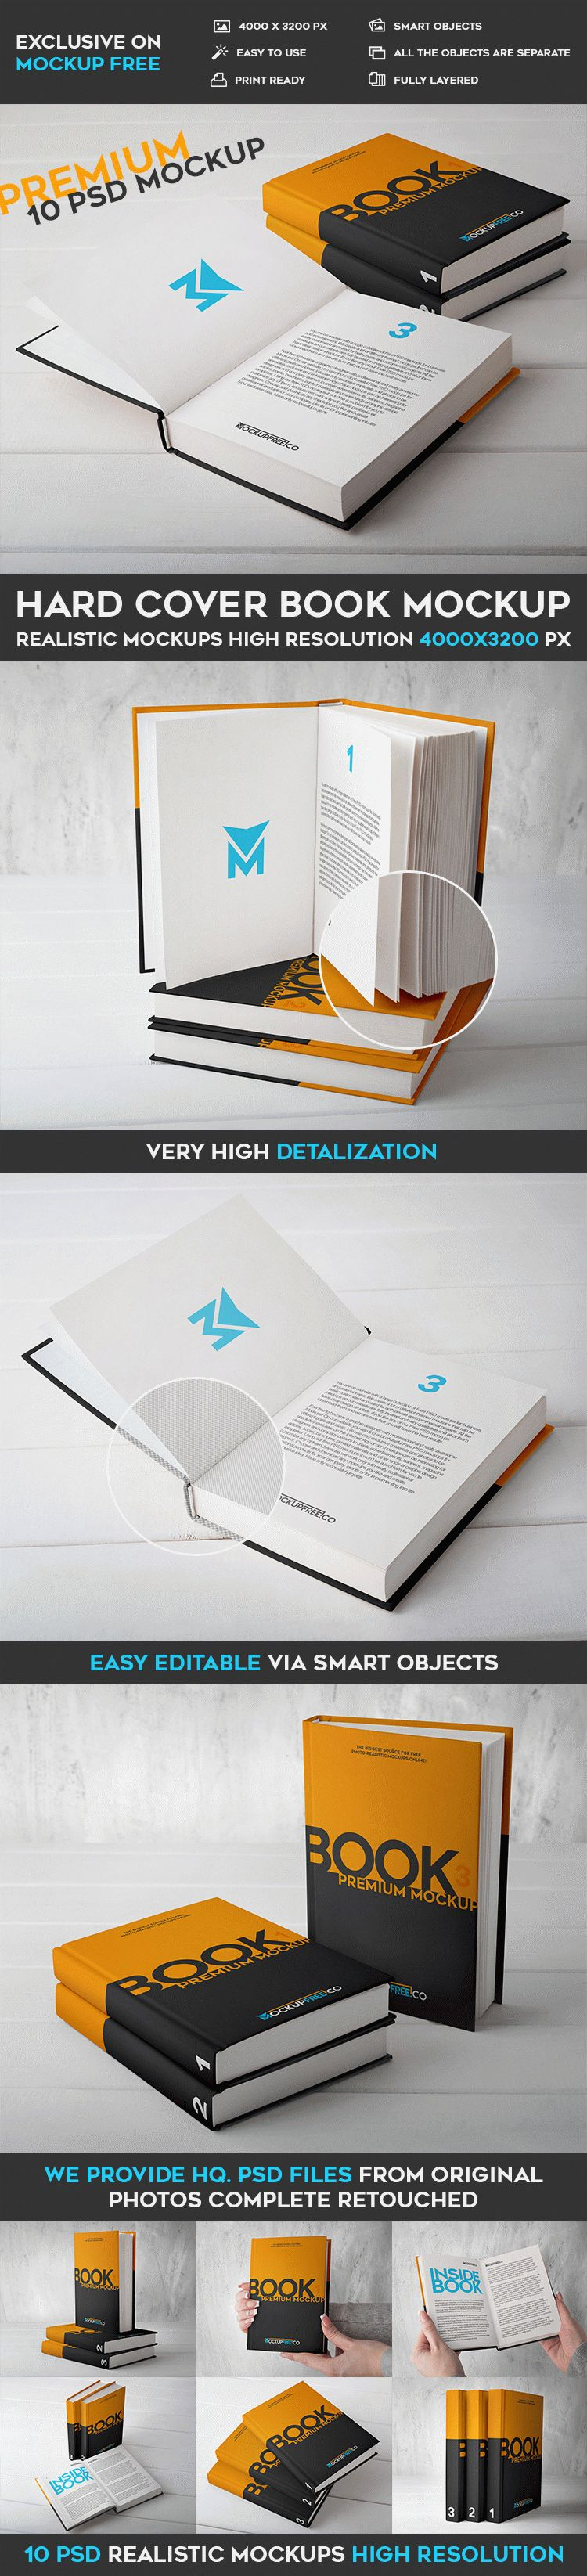 Bigpreview_hard-cover-book-10-premium-psd-mockups